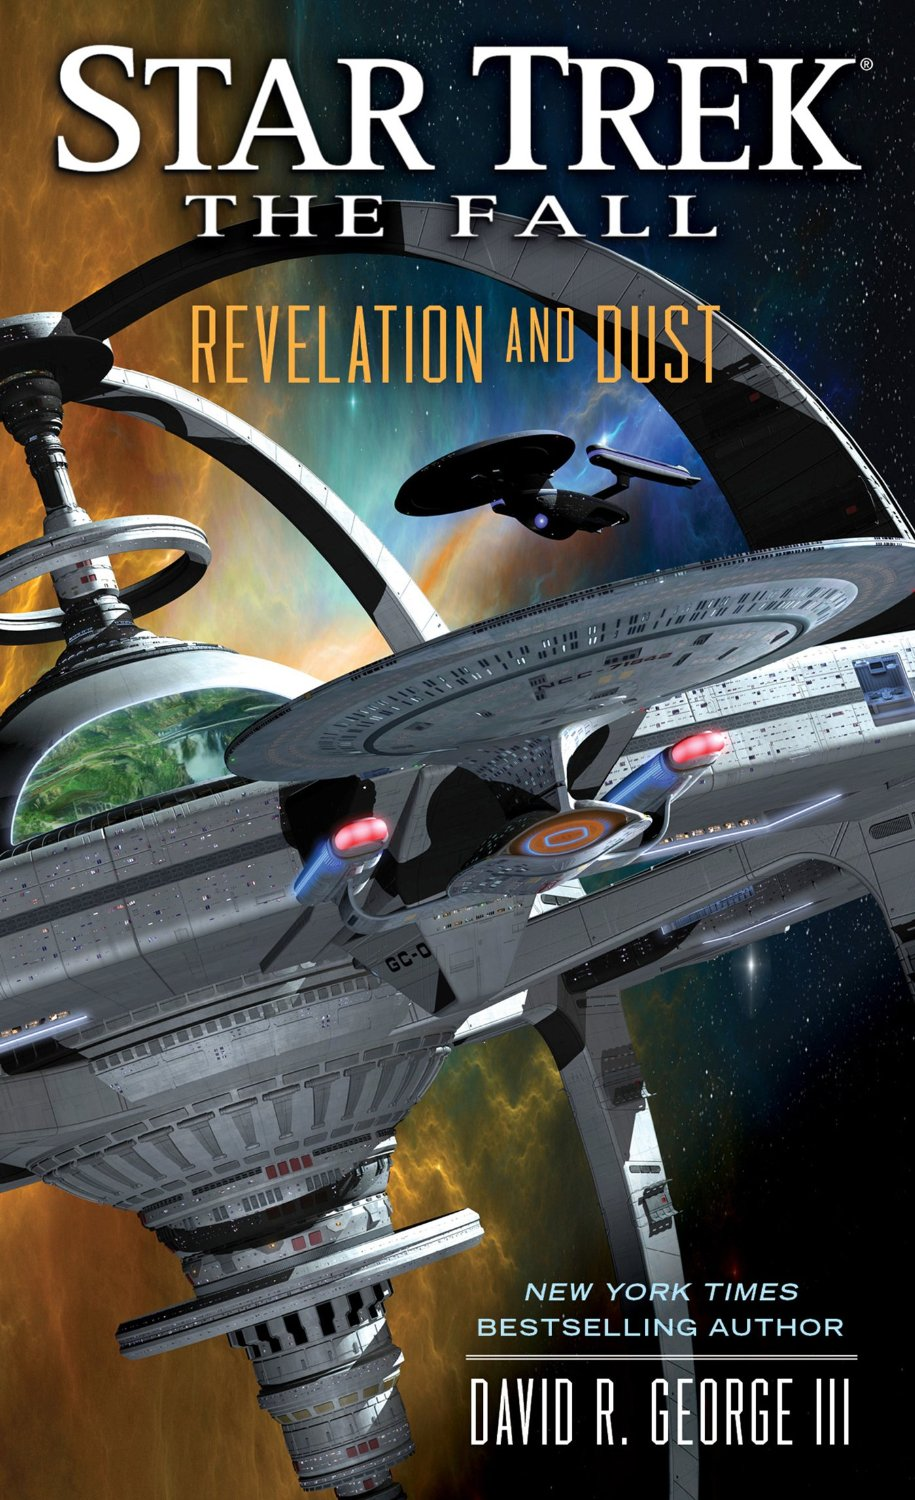 Star trek the fall memory beta non canon star trek wiki revelation and dust solicitation cover fandeluxe Document